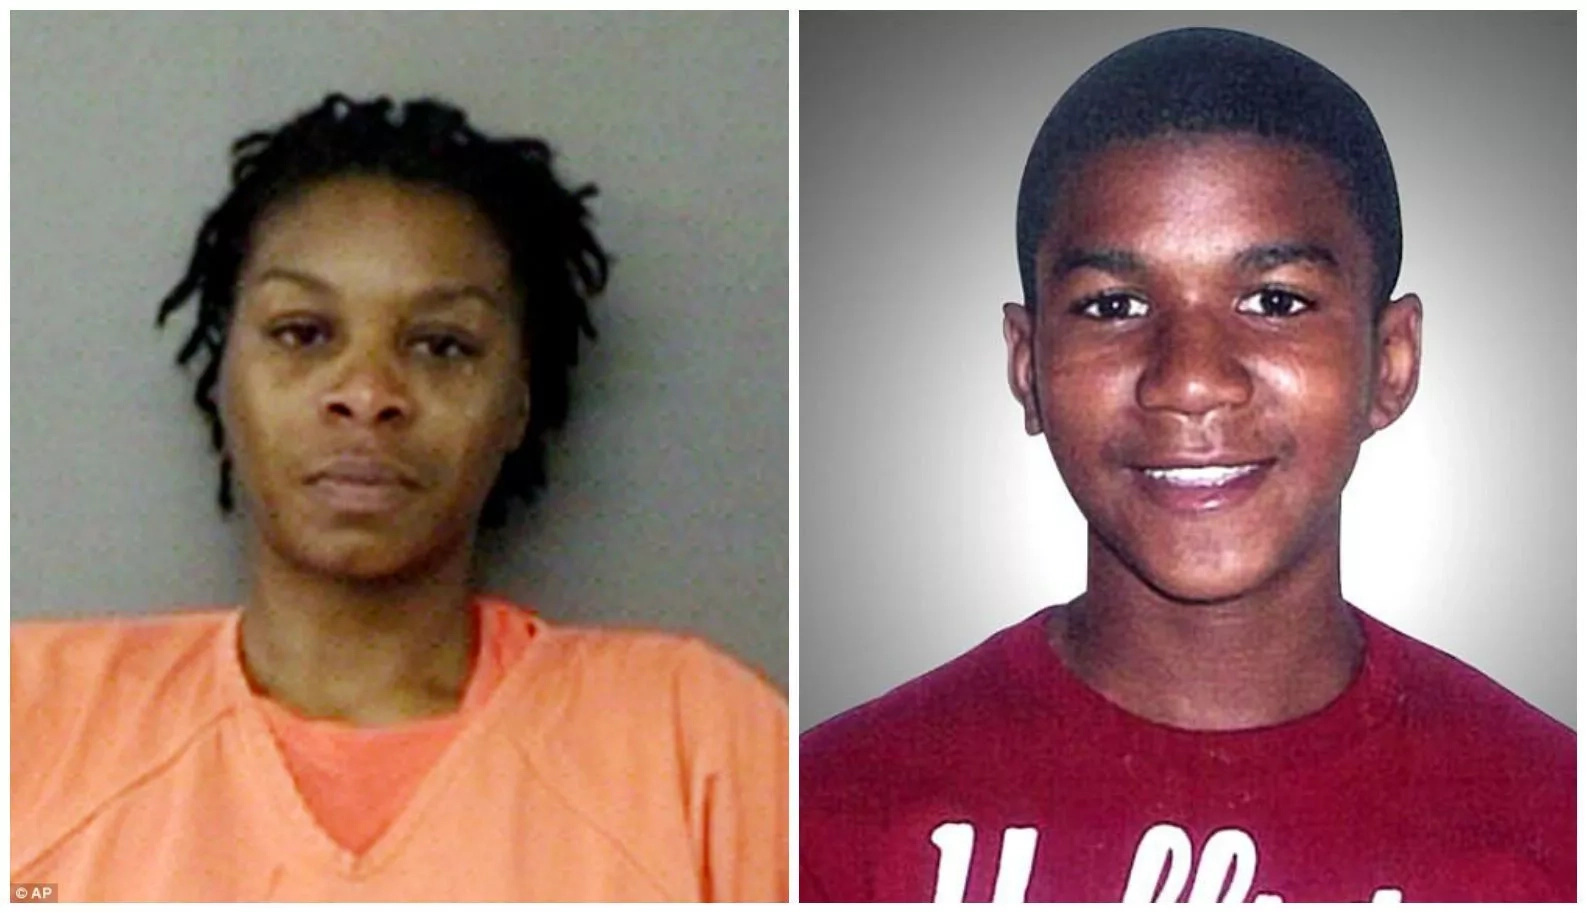 Sandra Bland (left) and Trayvon Martin died in circumstances deemed by many as unjust